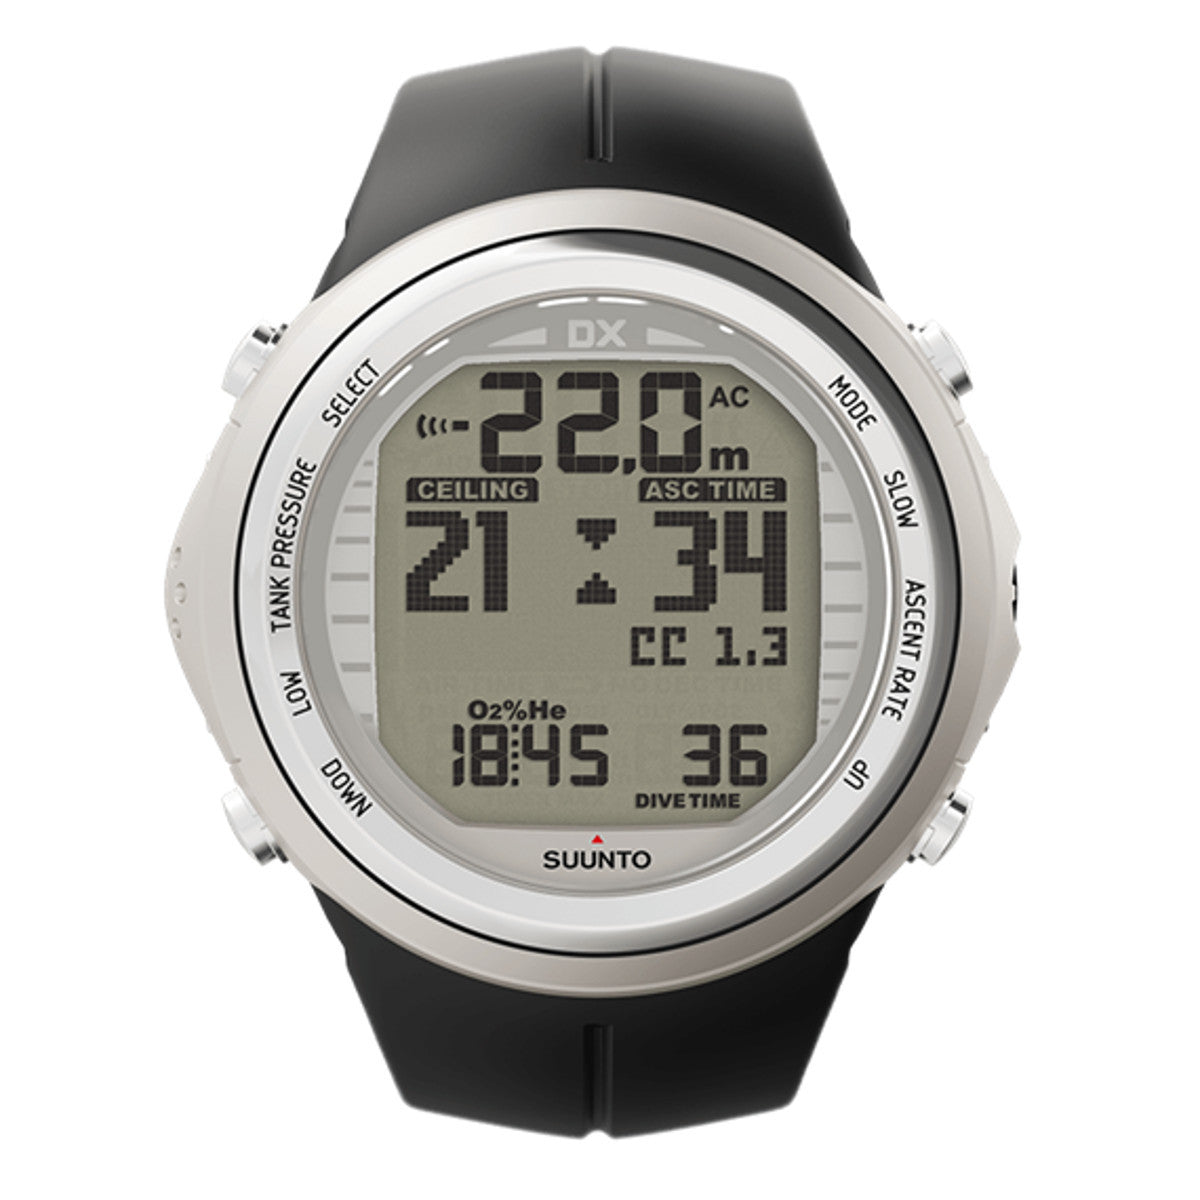 Suunto DX Computer + FREE £250 TRANSMITTER - Oyster Diving Shop - 2